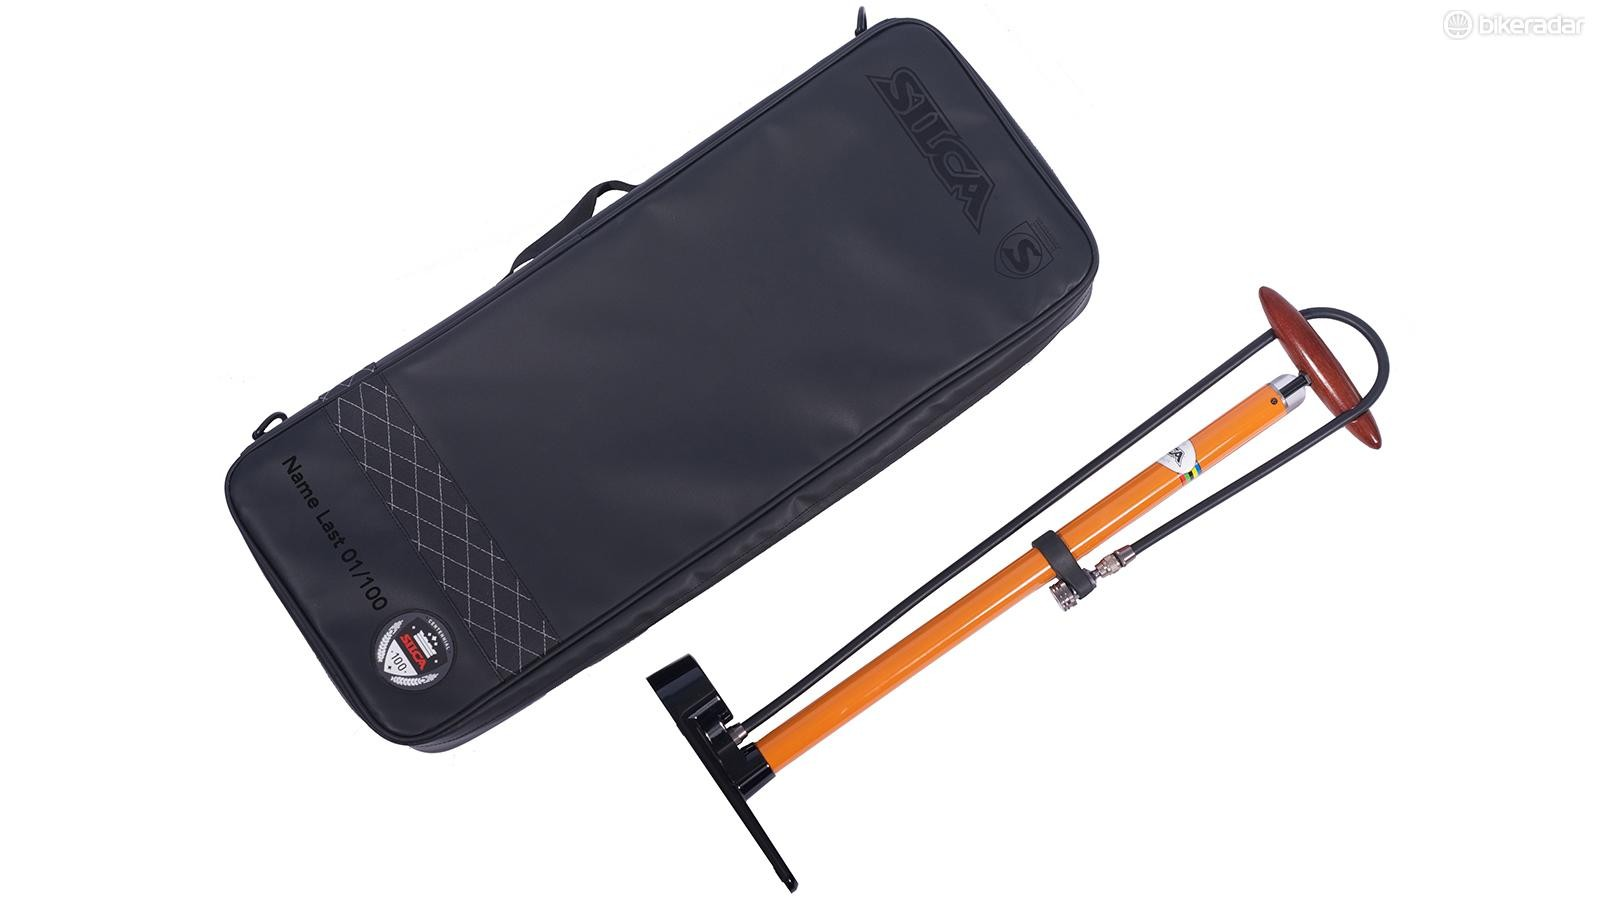 The limited edition Silca Pista comes with a travel bag